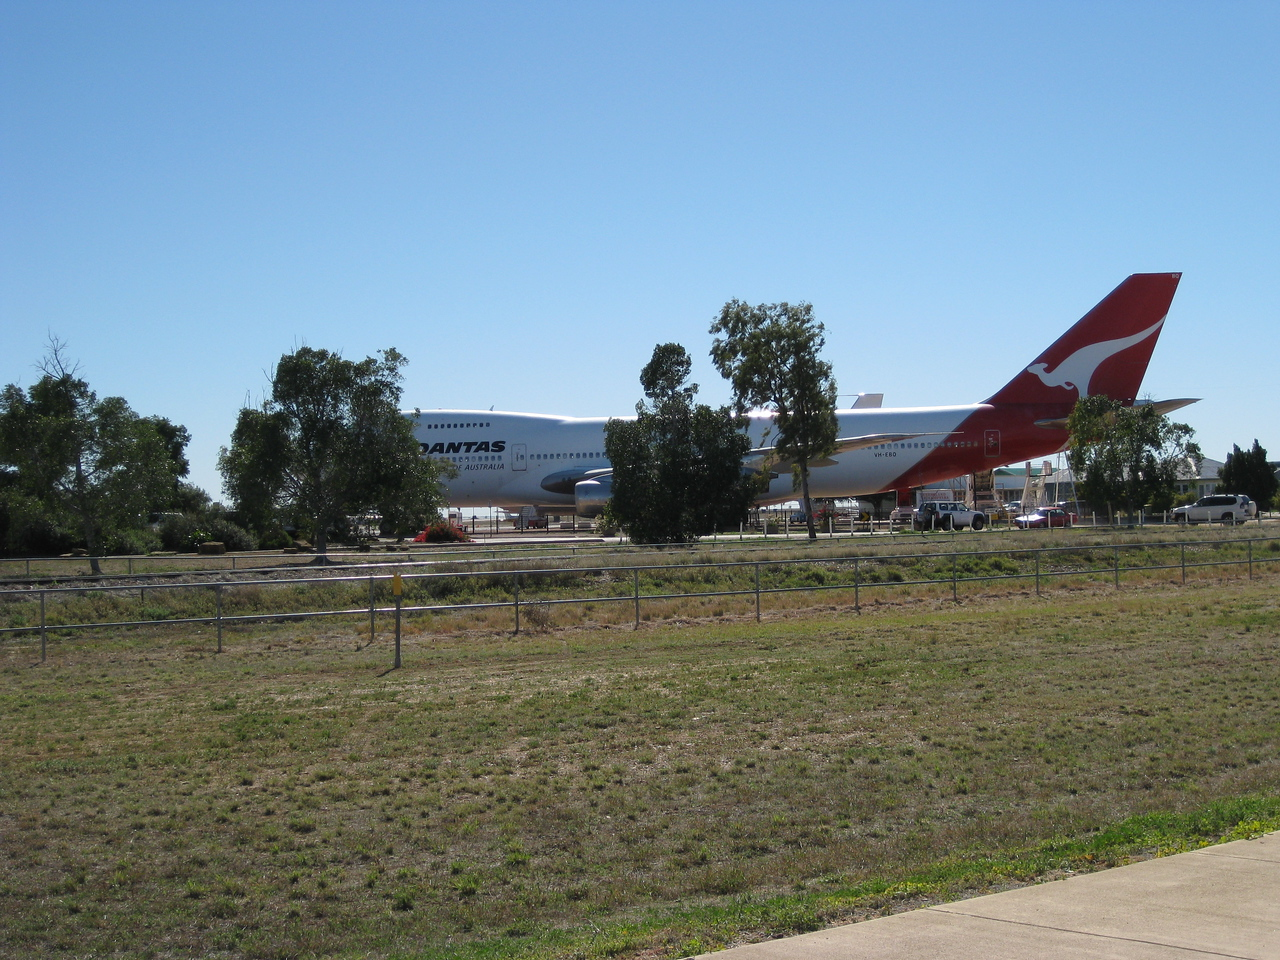 Longreach and the birthplace of Qantas.